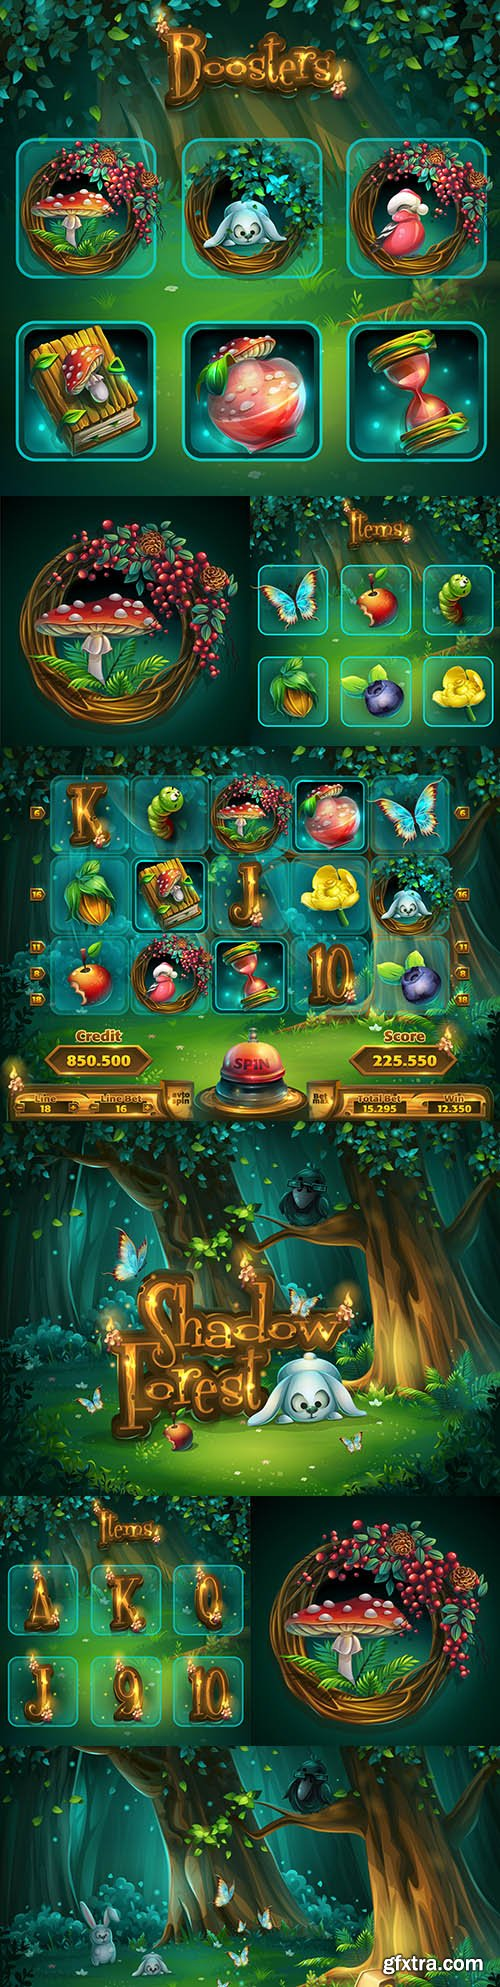 Set of computer game interface items shadowy forest